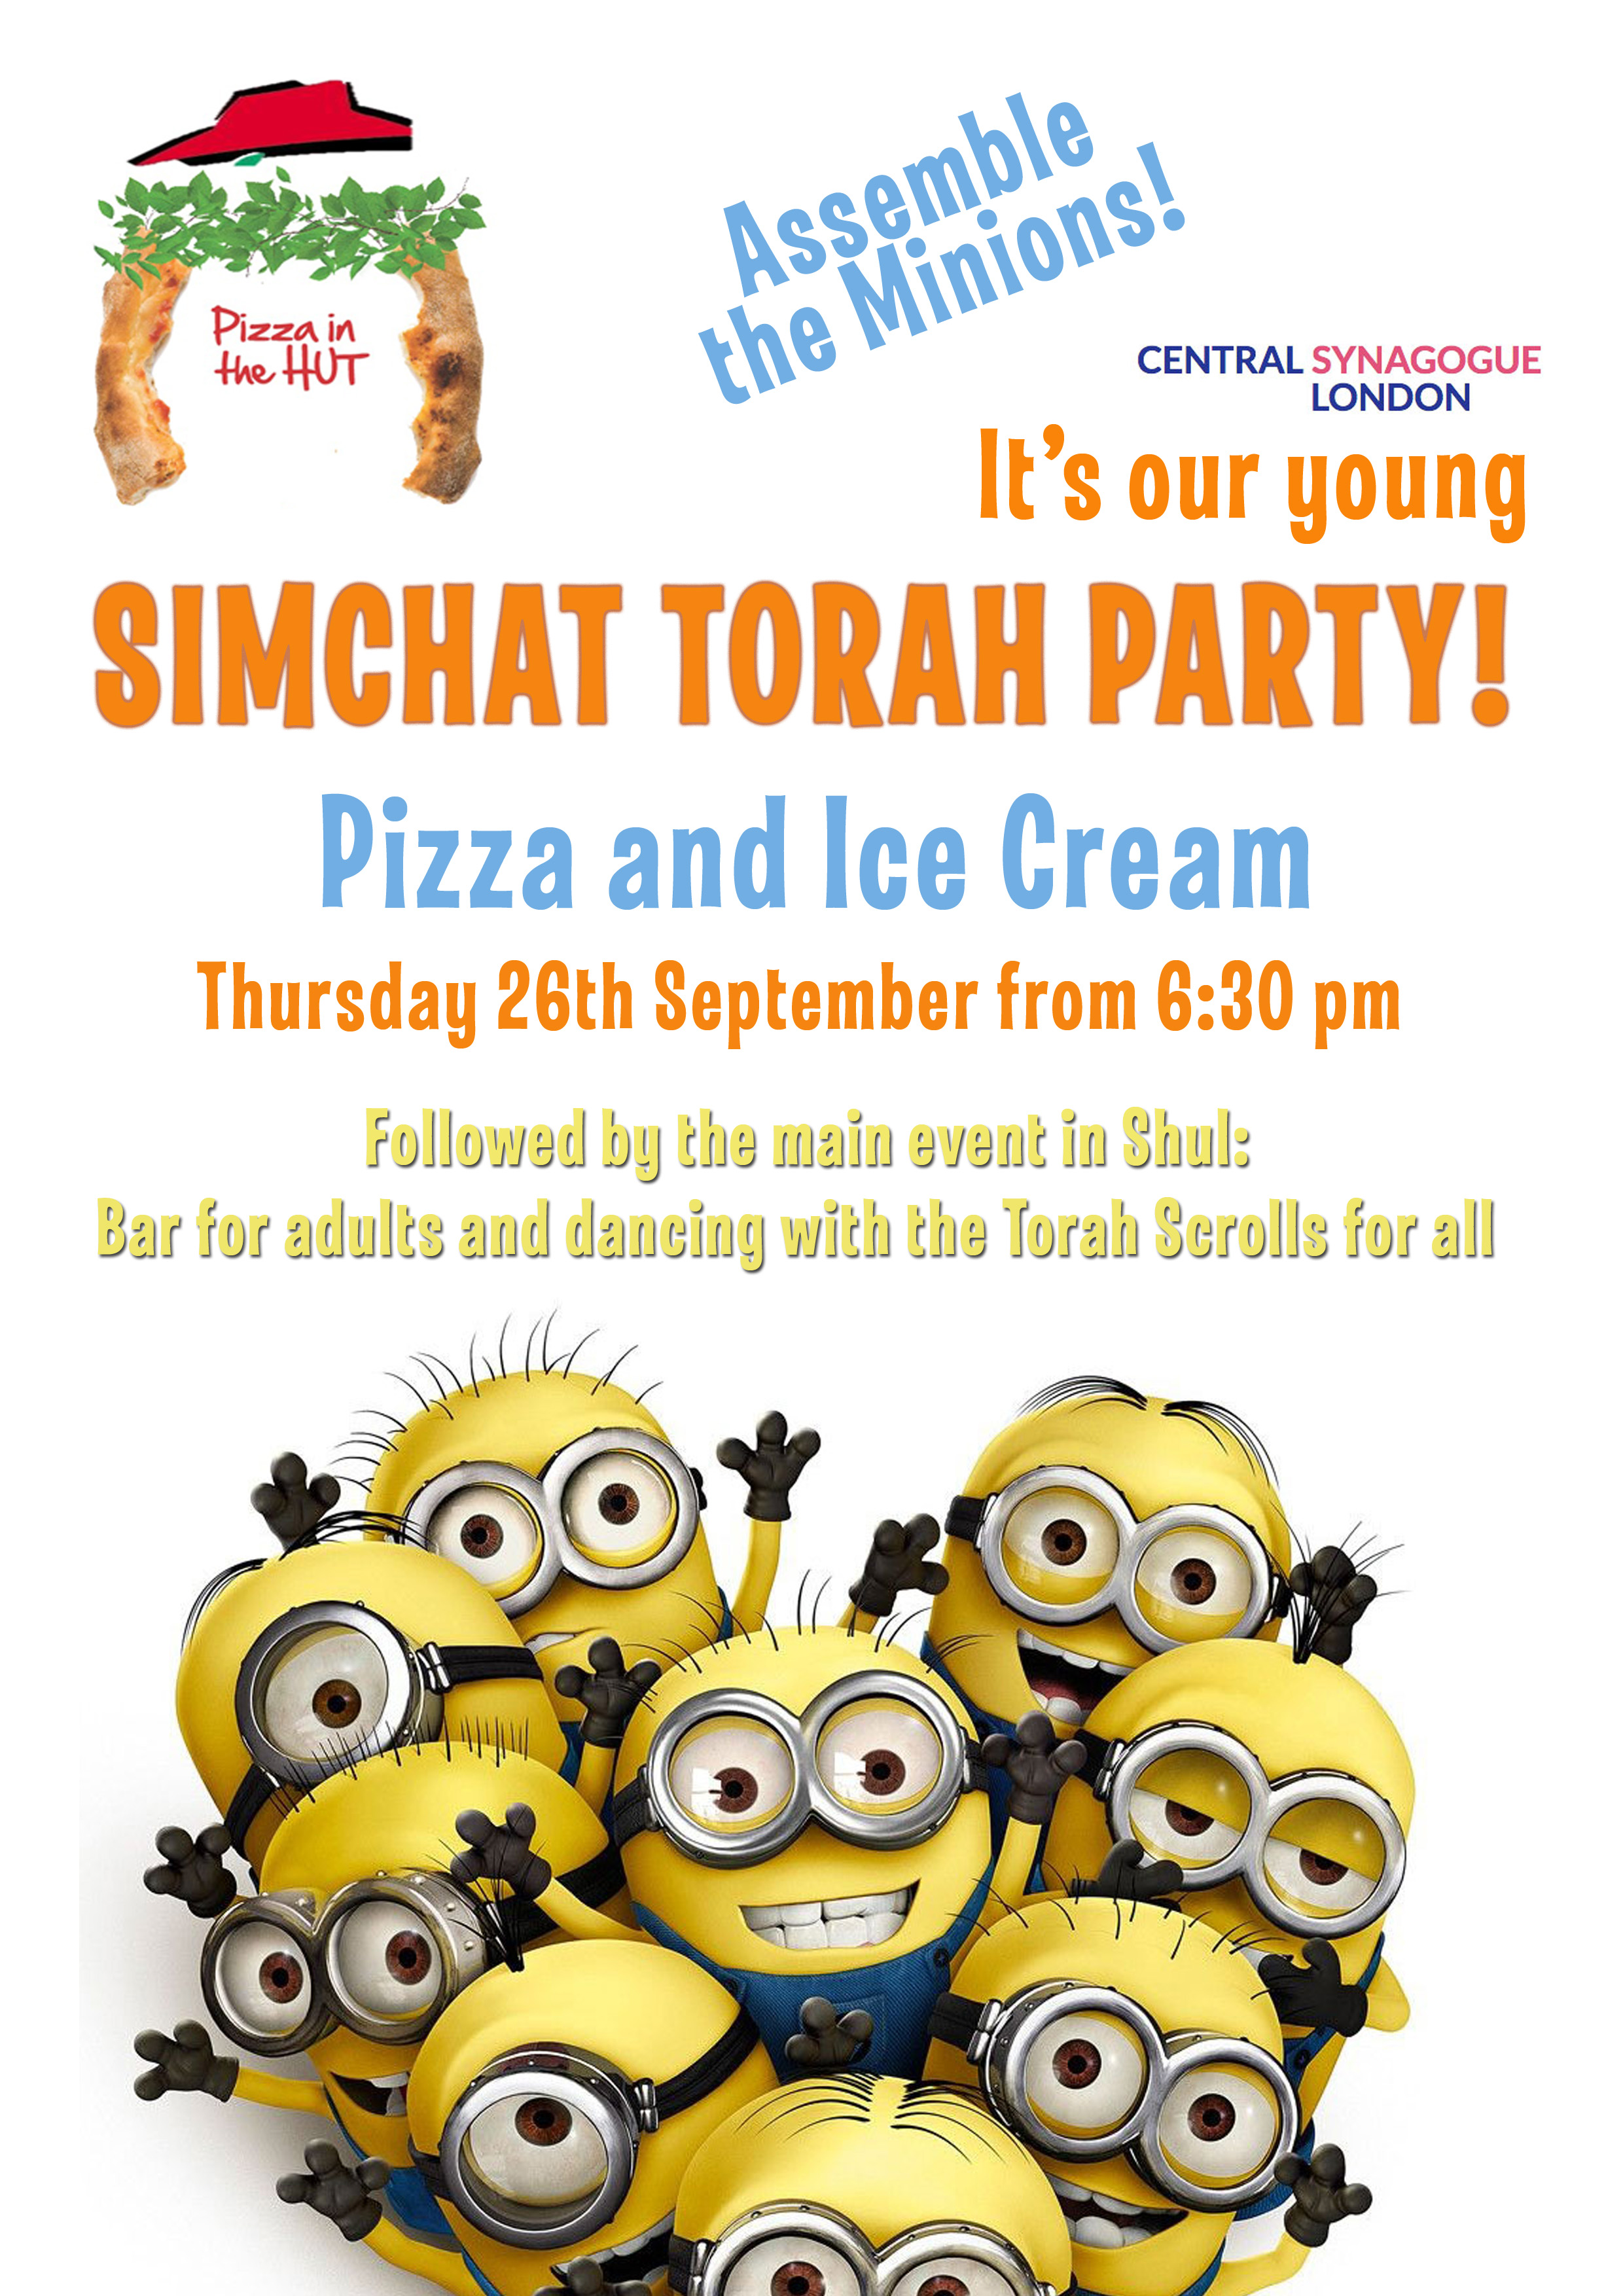 Simchat Torah Despicable Pizza party copy